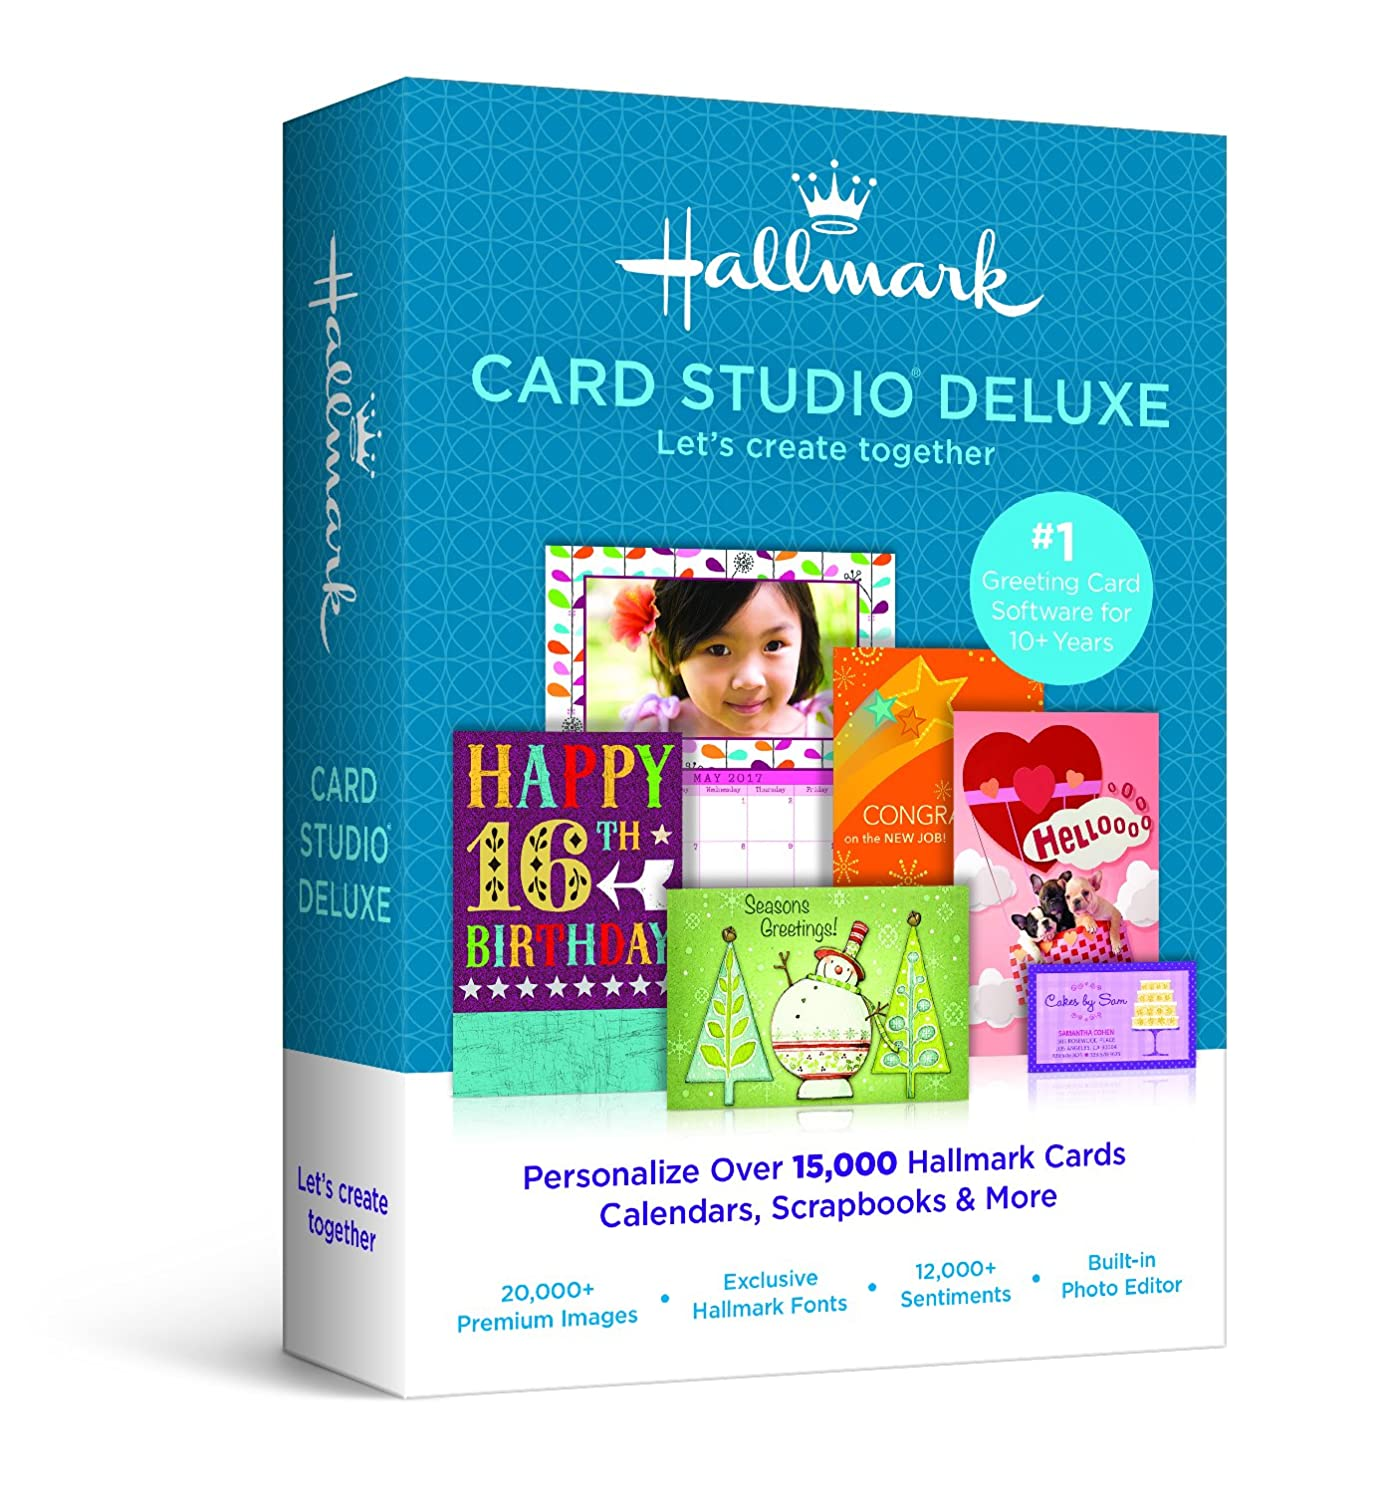 Amazon Hallmark Card Studio 2015 Deluxe